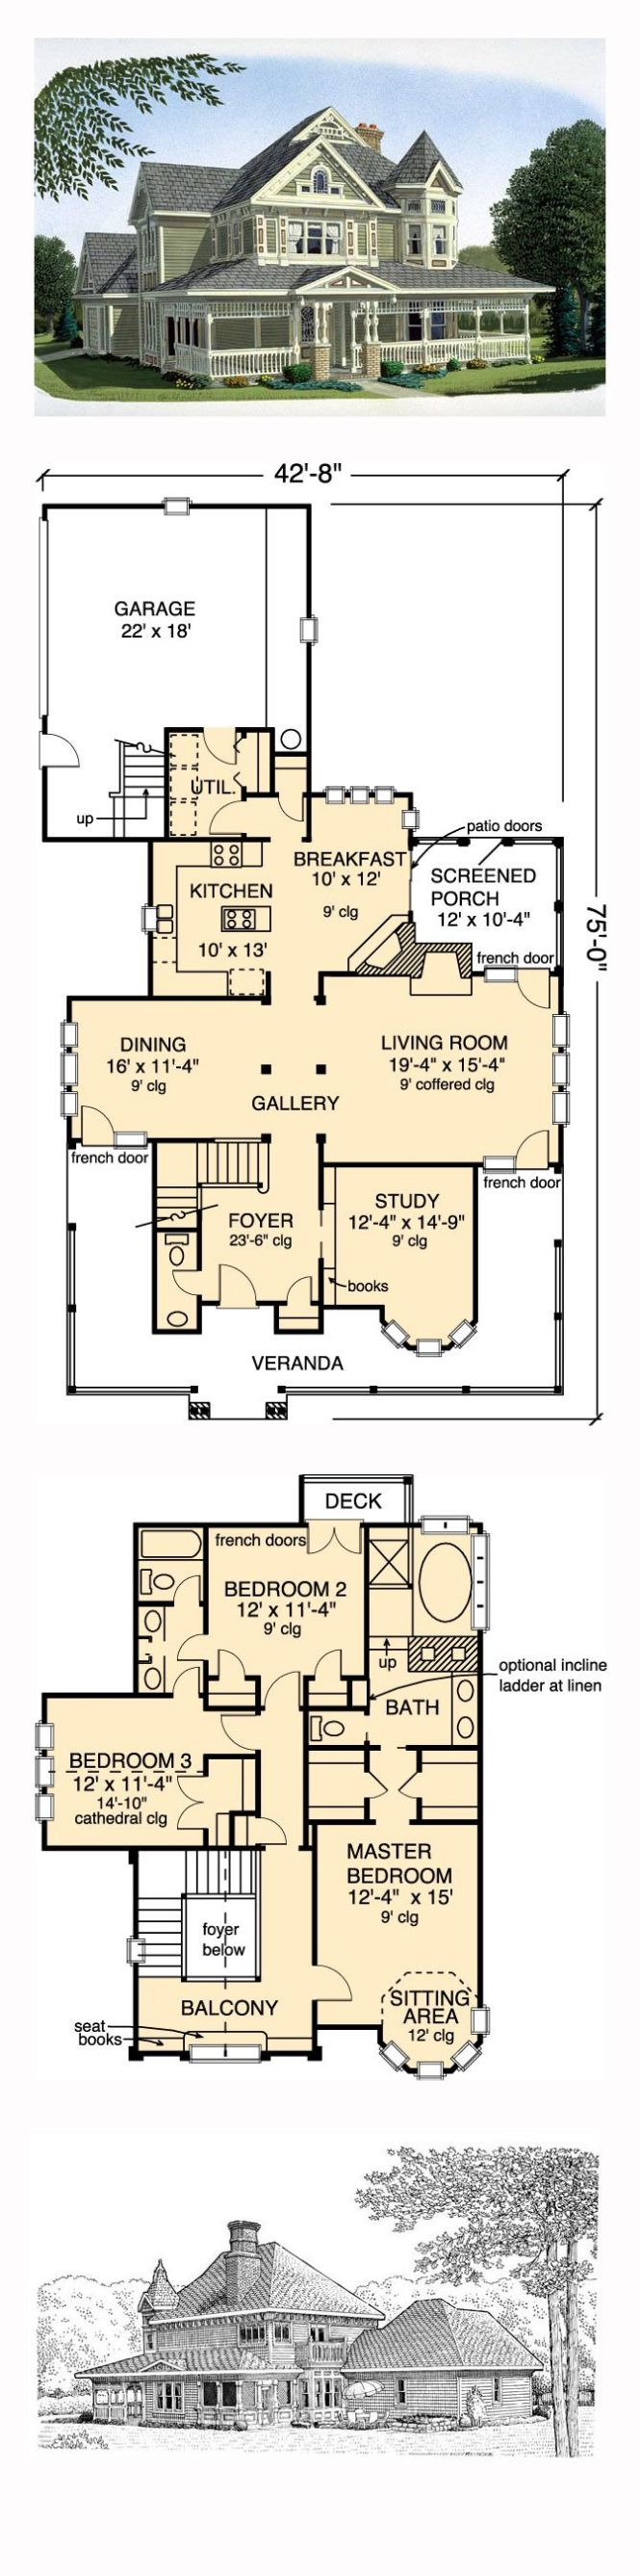 Victorian House Plan 95540 Total Living Area 2312 Sq Ft 3